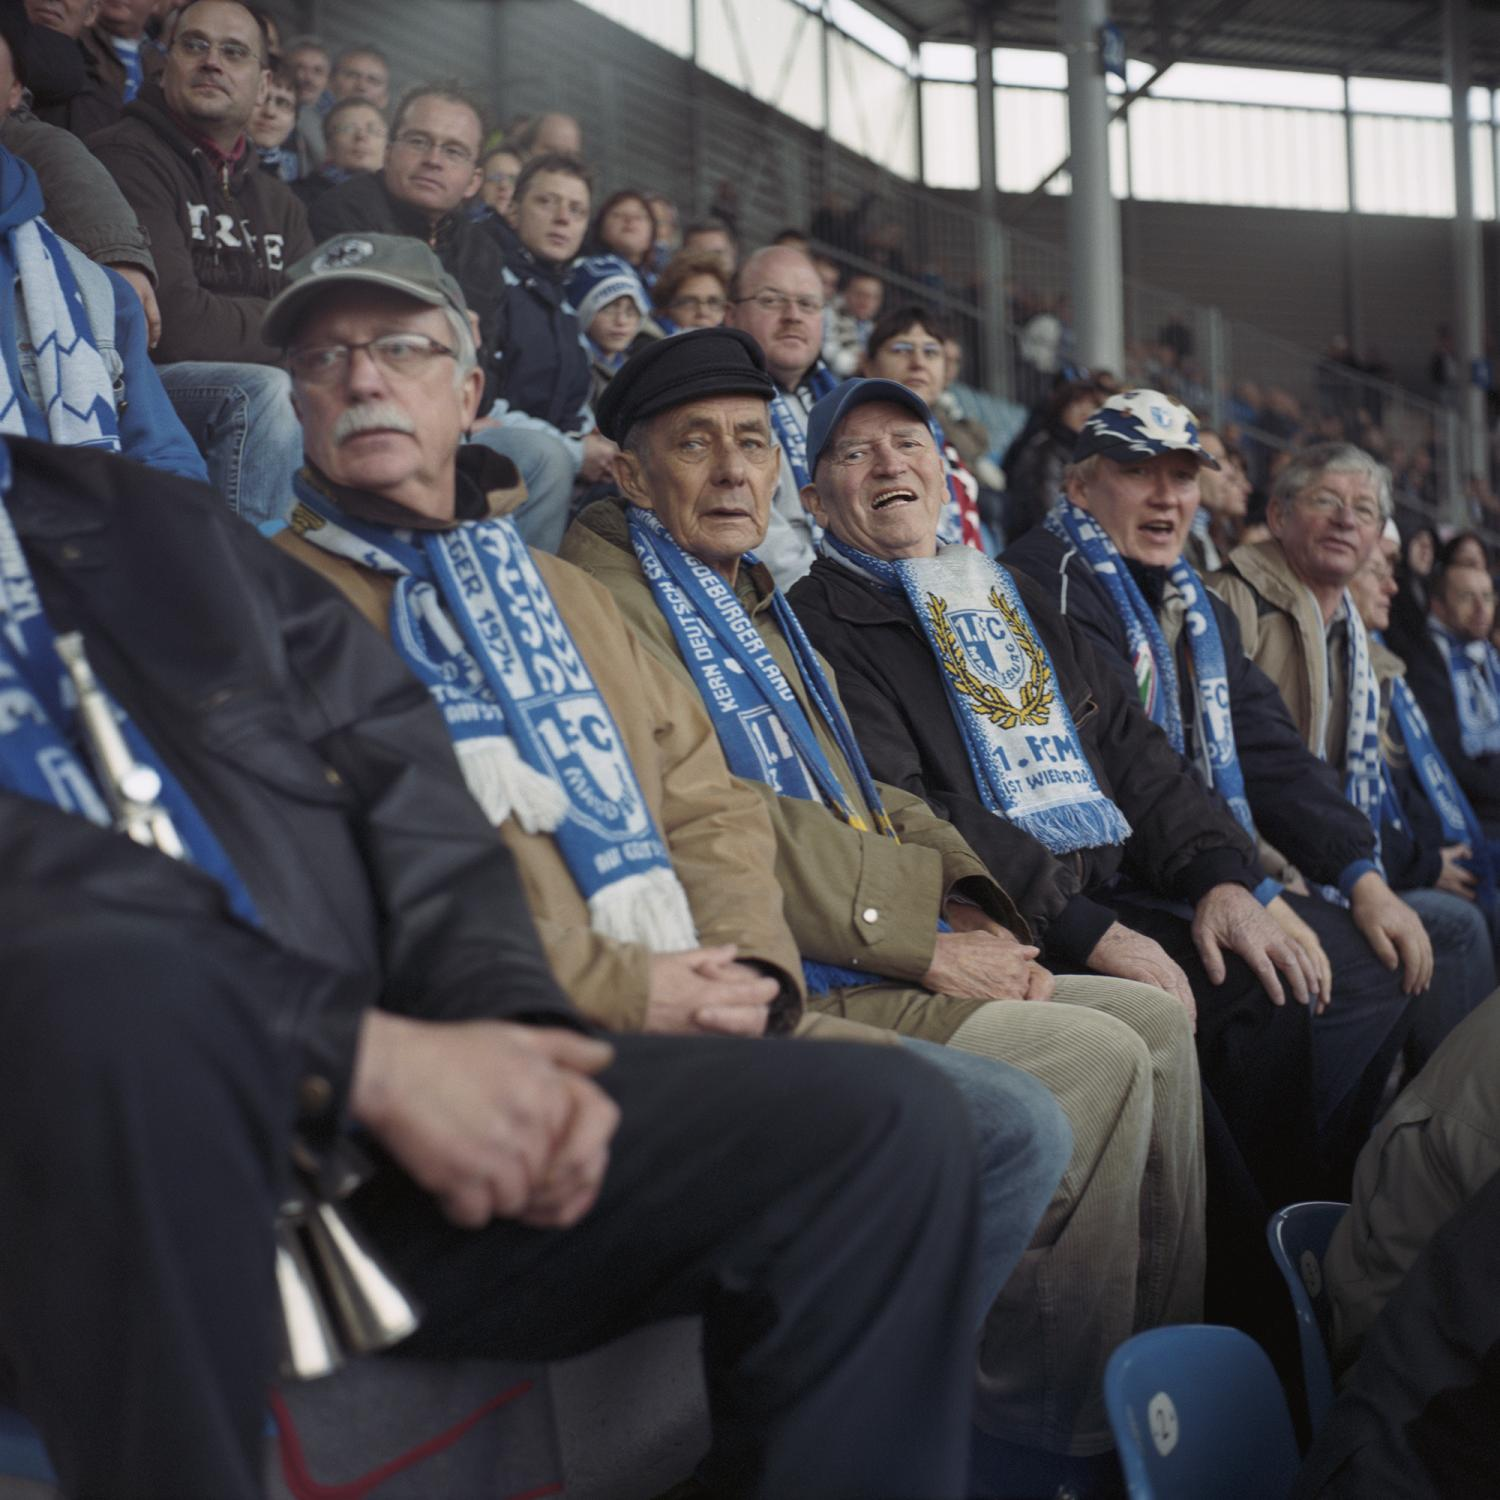 "A group of older supporters focus on the game 1. FC Magdeburg v Tennis Borussia Berlin (7:0) in the stadium in Magdeburg. The team used to be the most successful one in the GDR and got a legendary ""UEFA Cup Winners' Cup"" in 1974. Thanks to this glorious past 1 .FCM still has enjoyed a huge amount of supporters during good and bad times after the fall of the Wall."